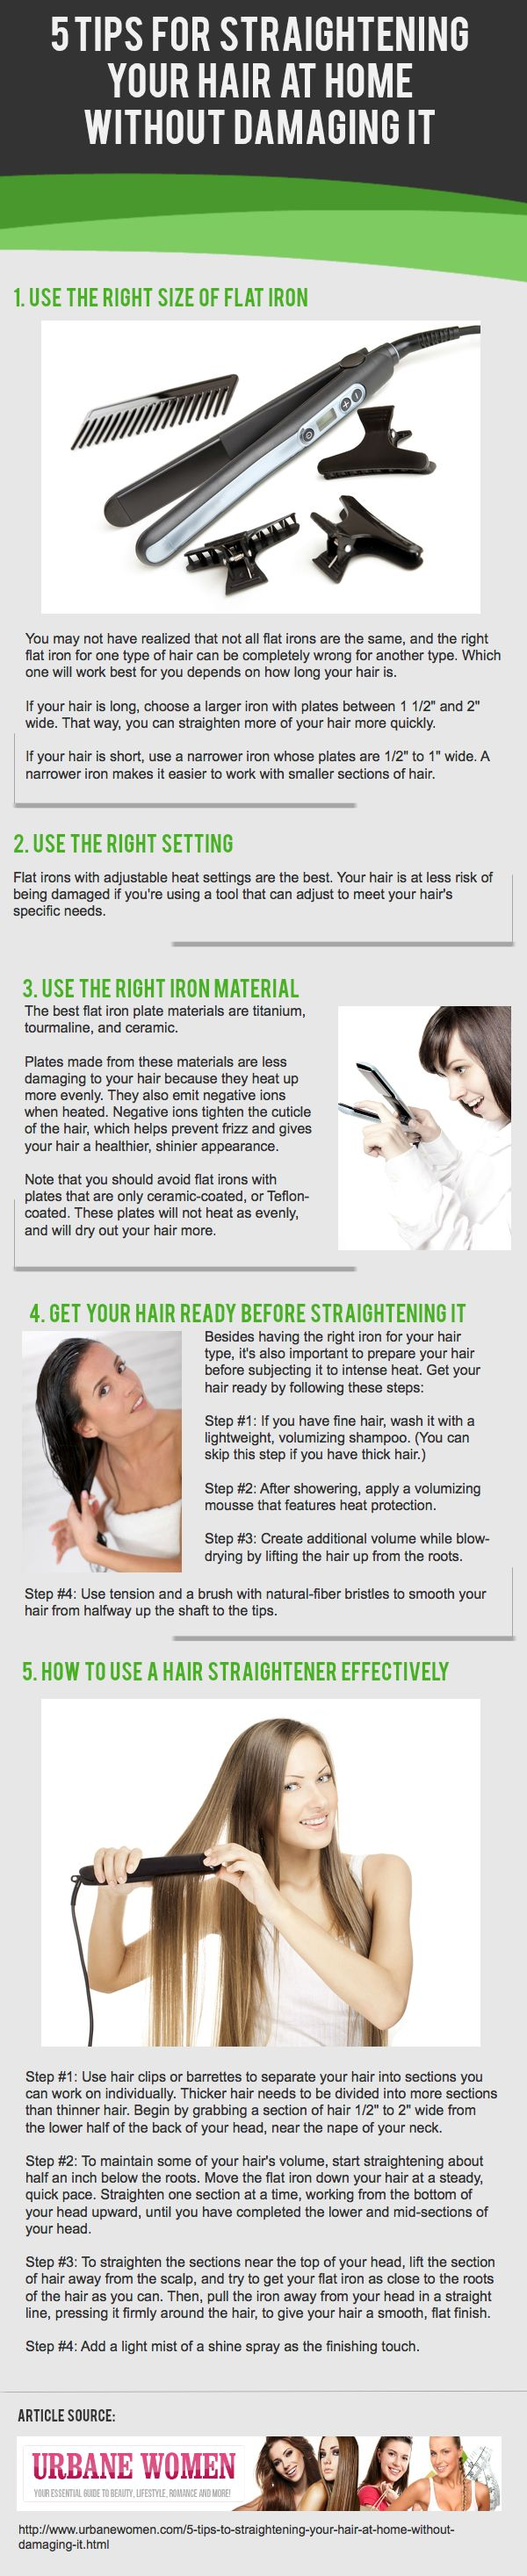 """""""5 Tips To Straightening Your Hair At Home Without Damaging It"""" as reviewed by http://www.1hairregrowth.com/cd--c-7979-cn-HairRegrowthAccessories.html"""